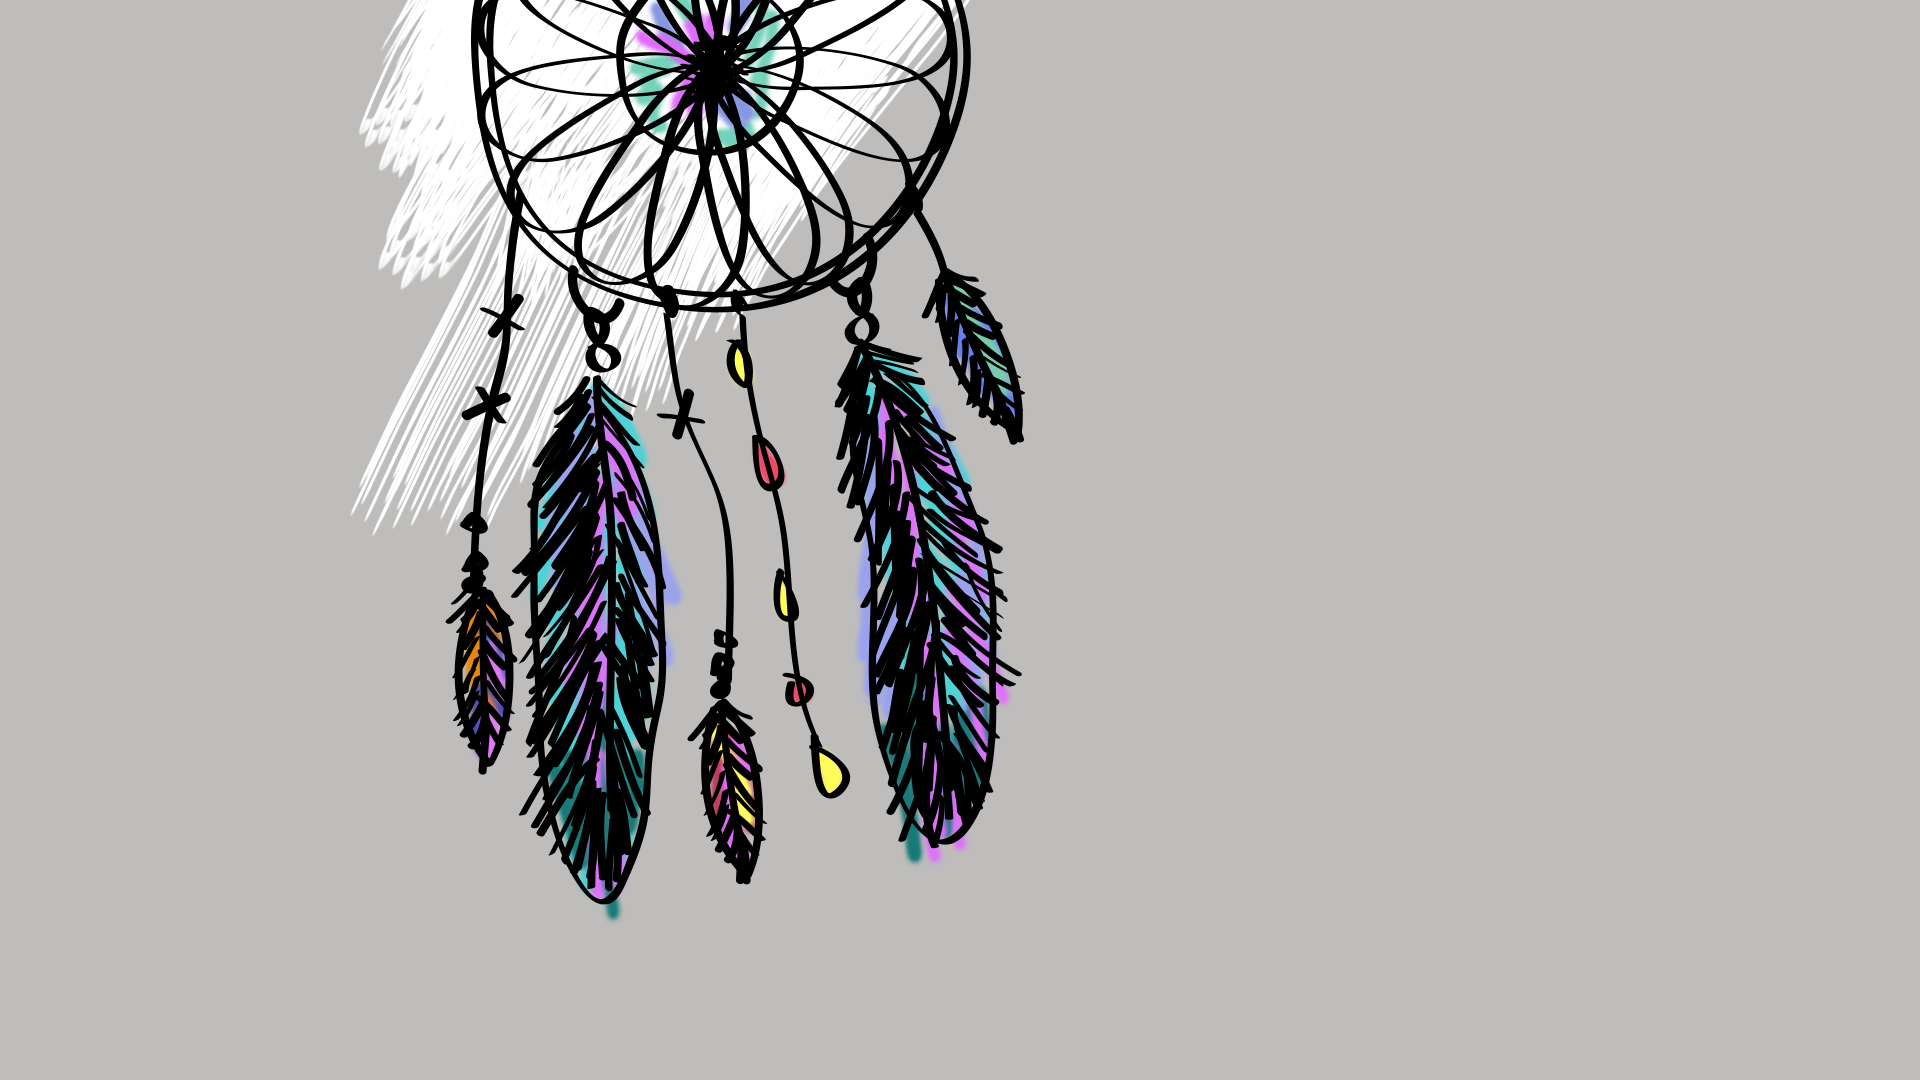 34c6cda88a383 dreamcatcher art wallpaper desktop background | ololoshenka ...